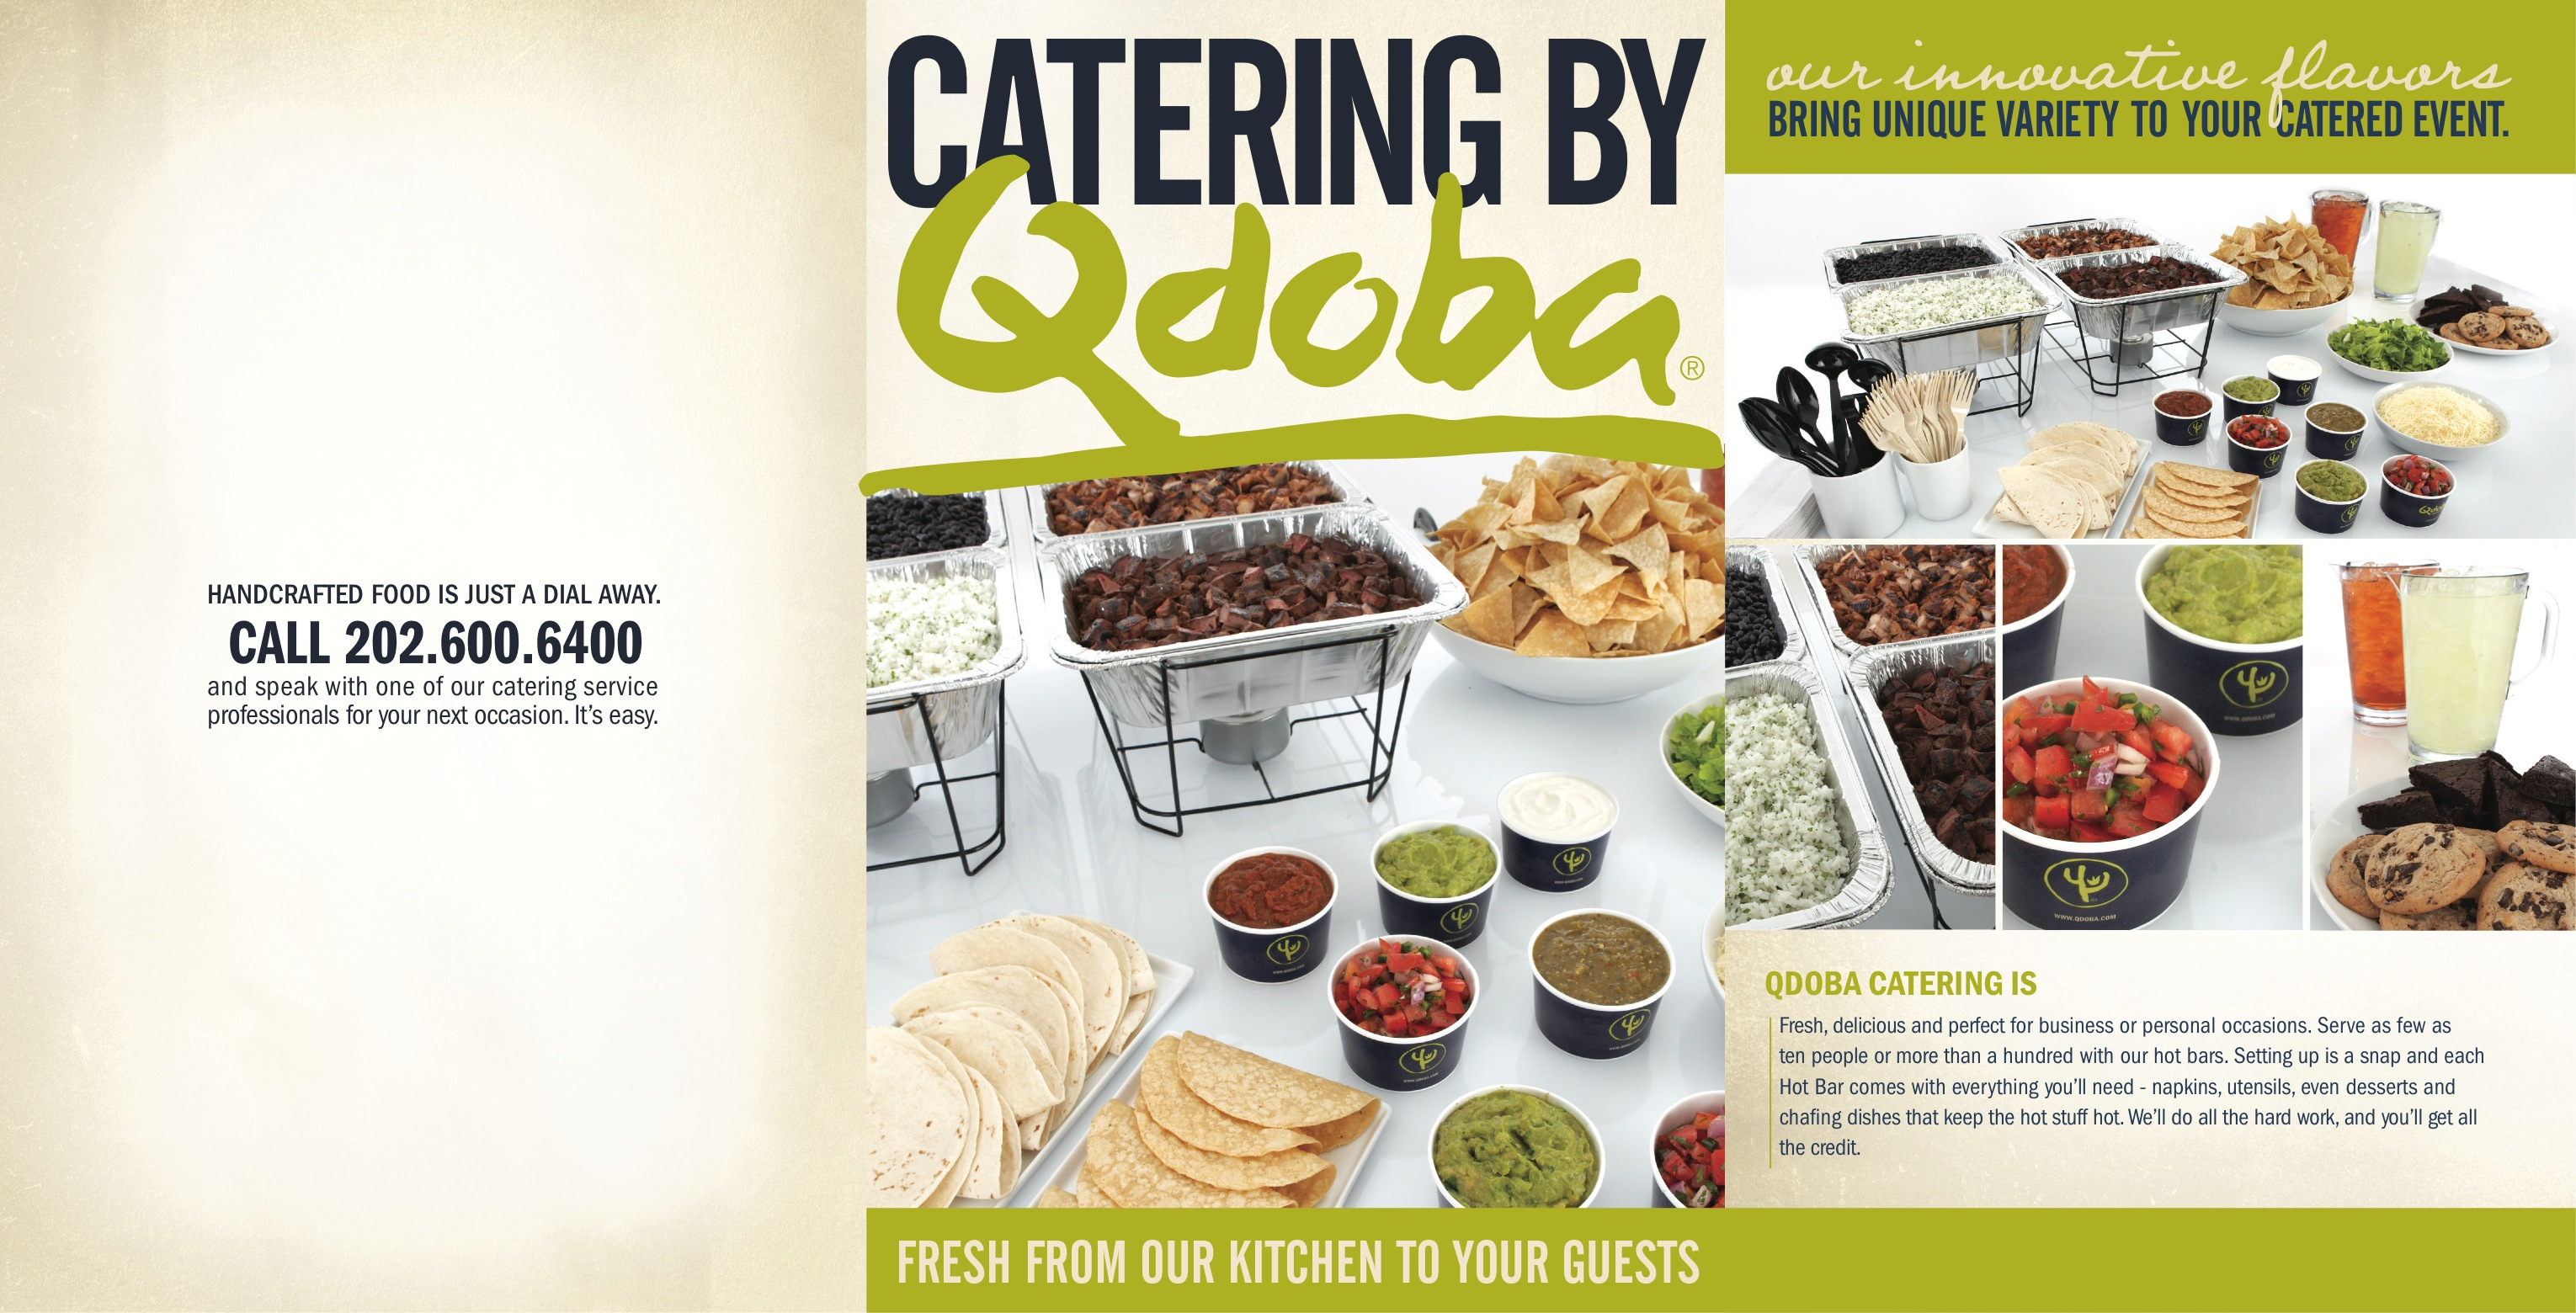 How Much Does Qdoba Catering Cost